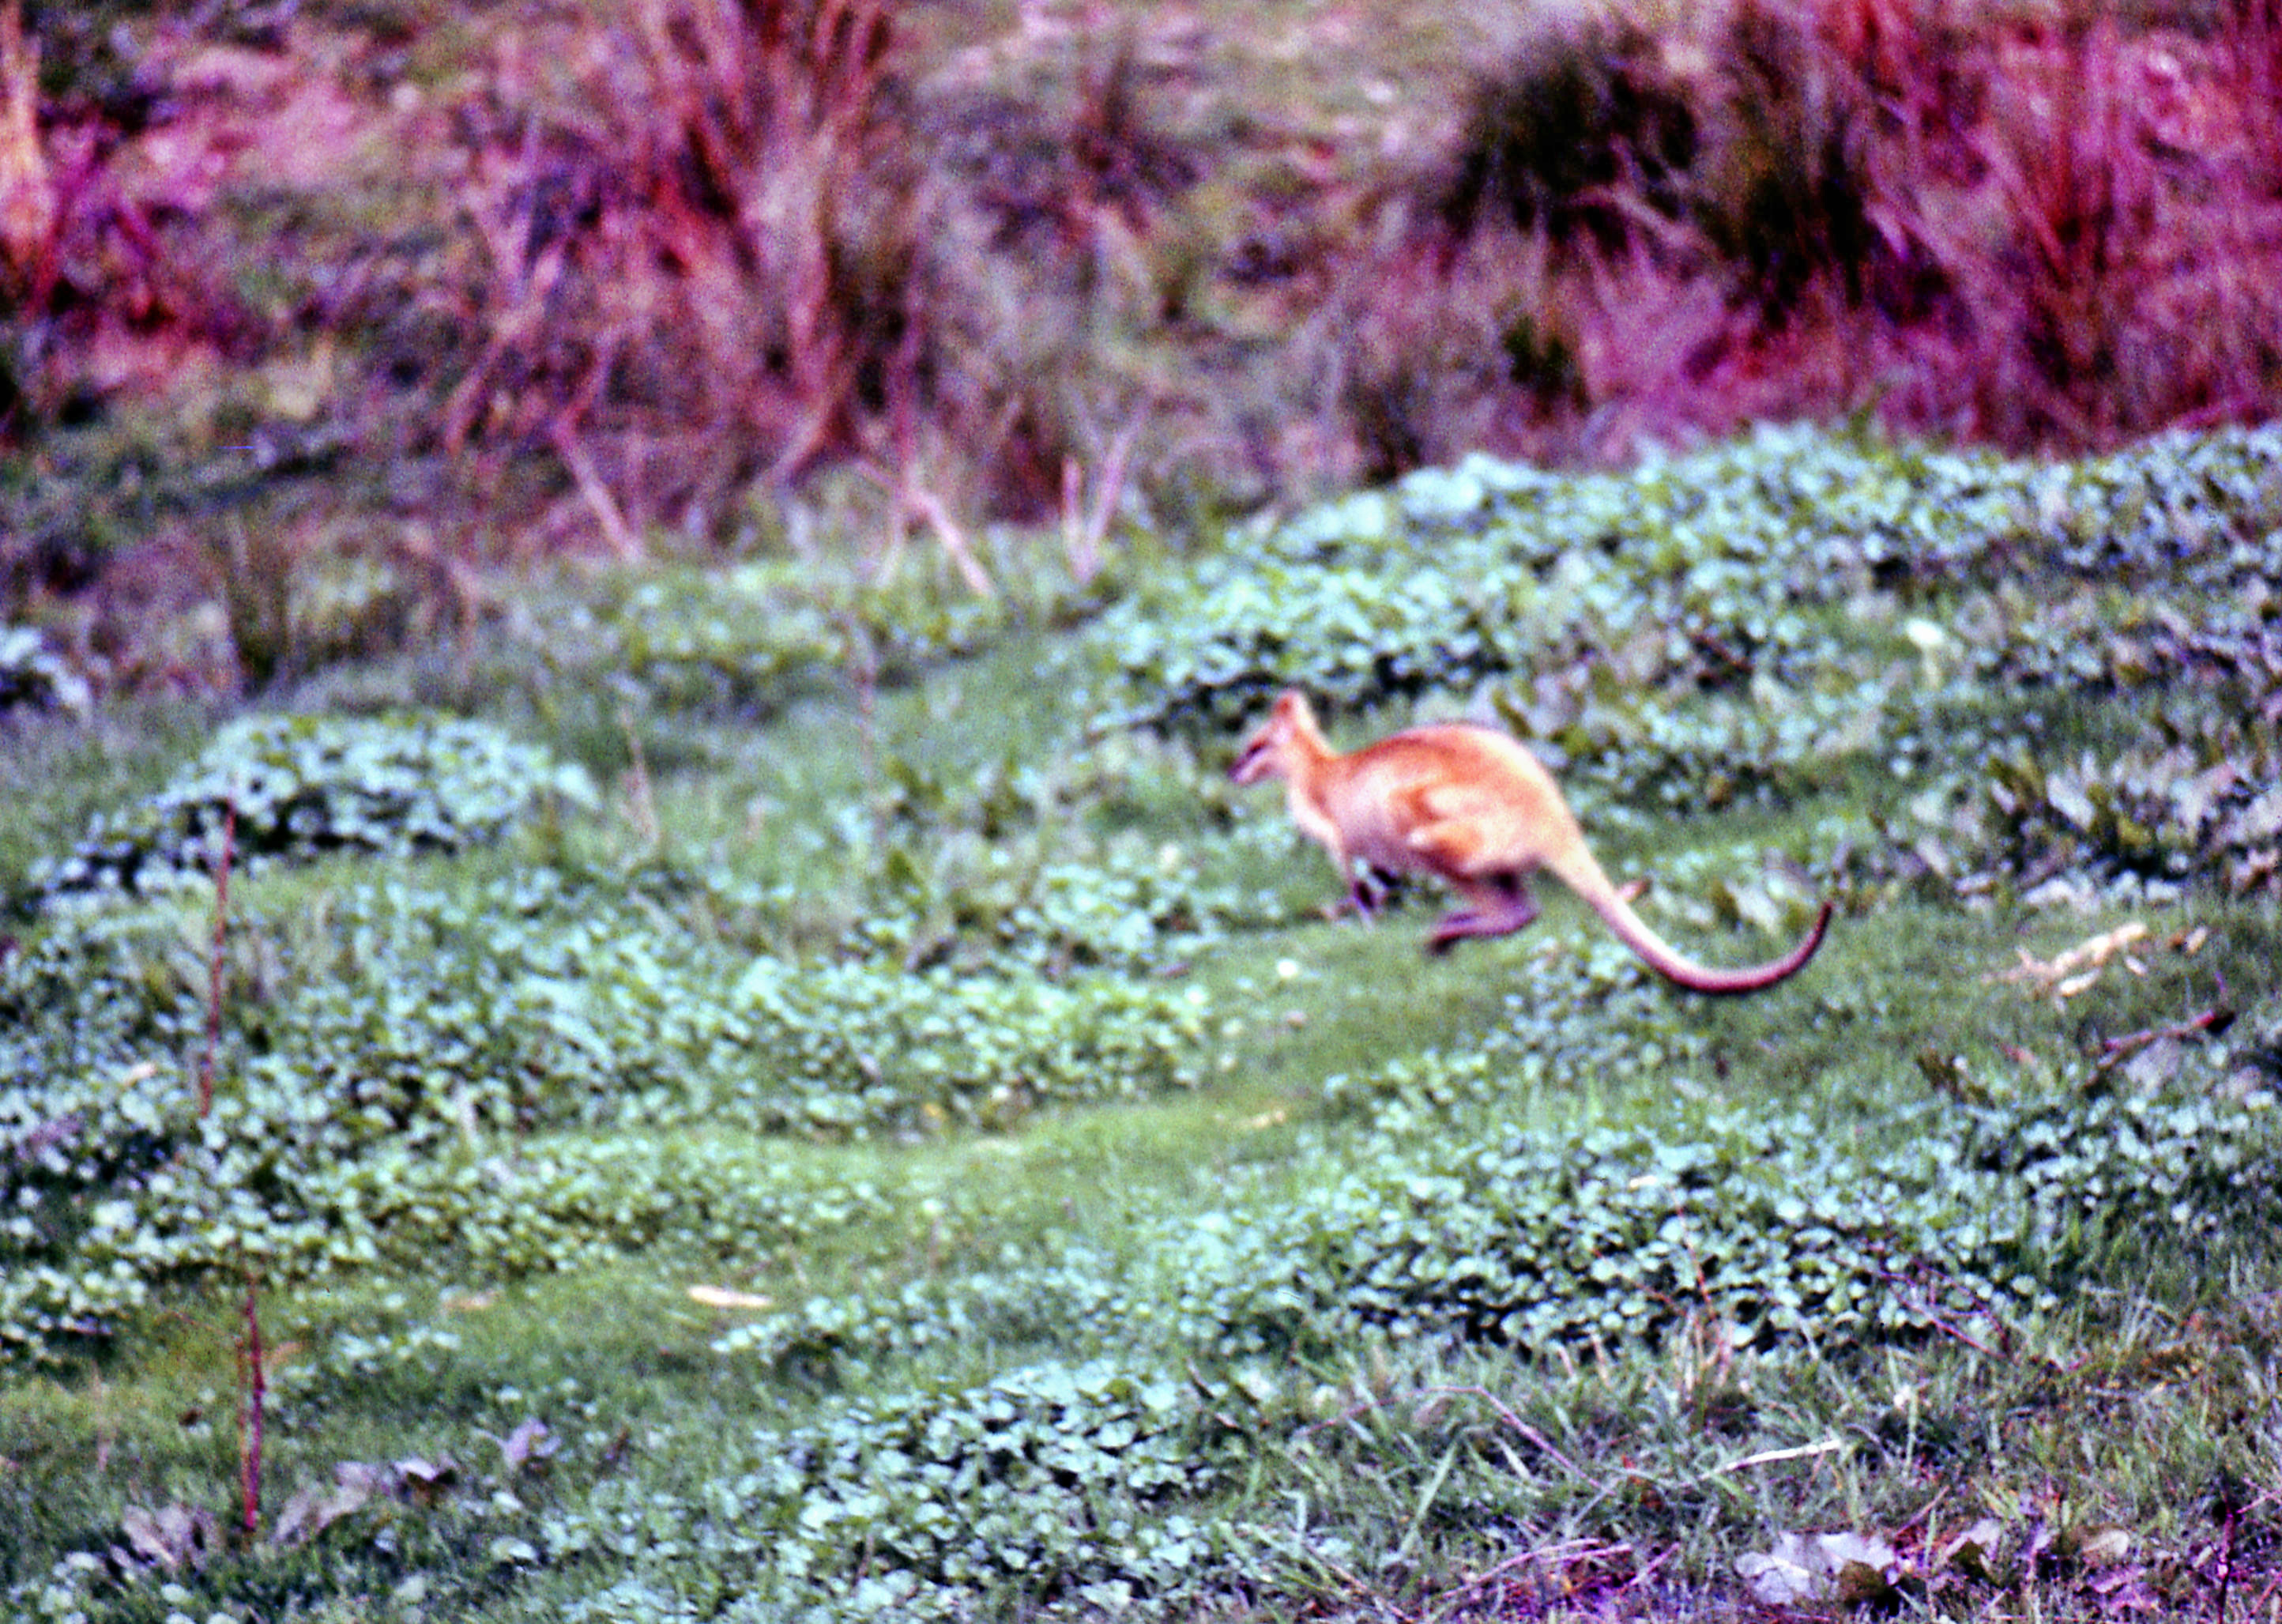 Wallaby-2.jpeg